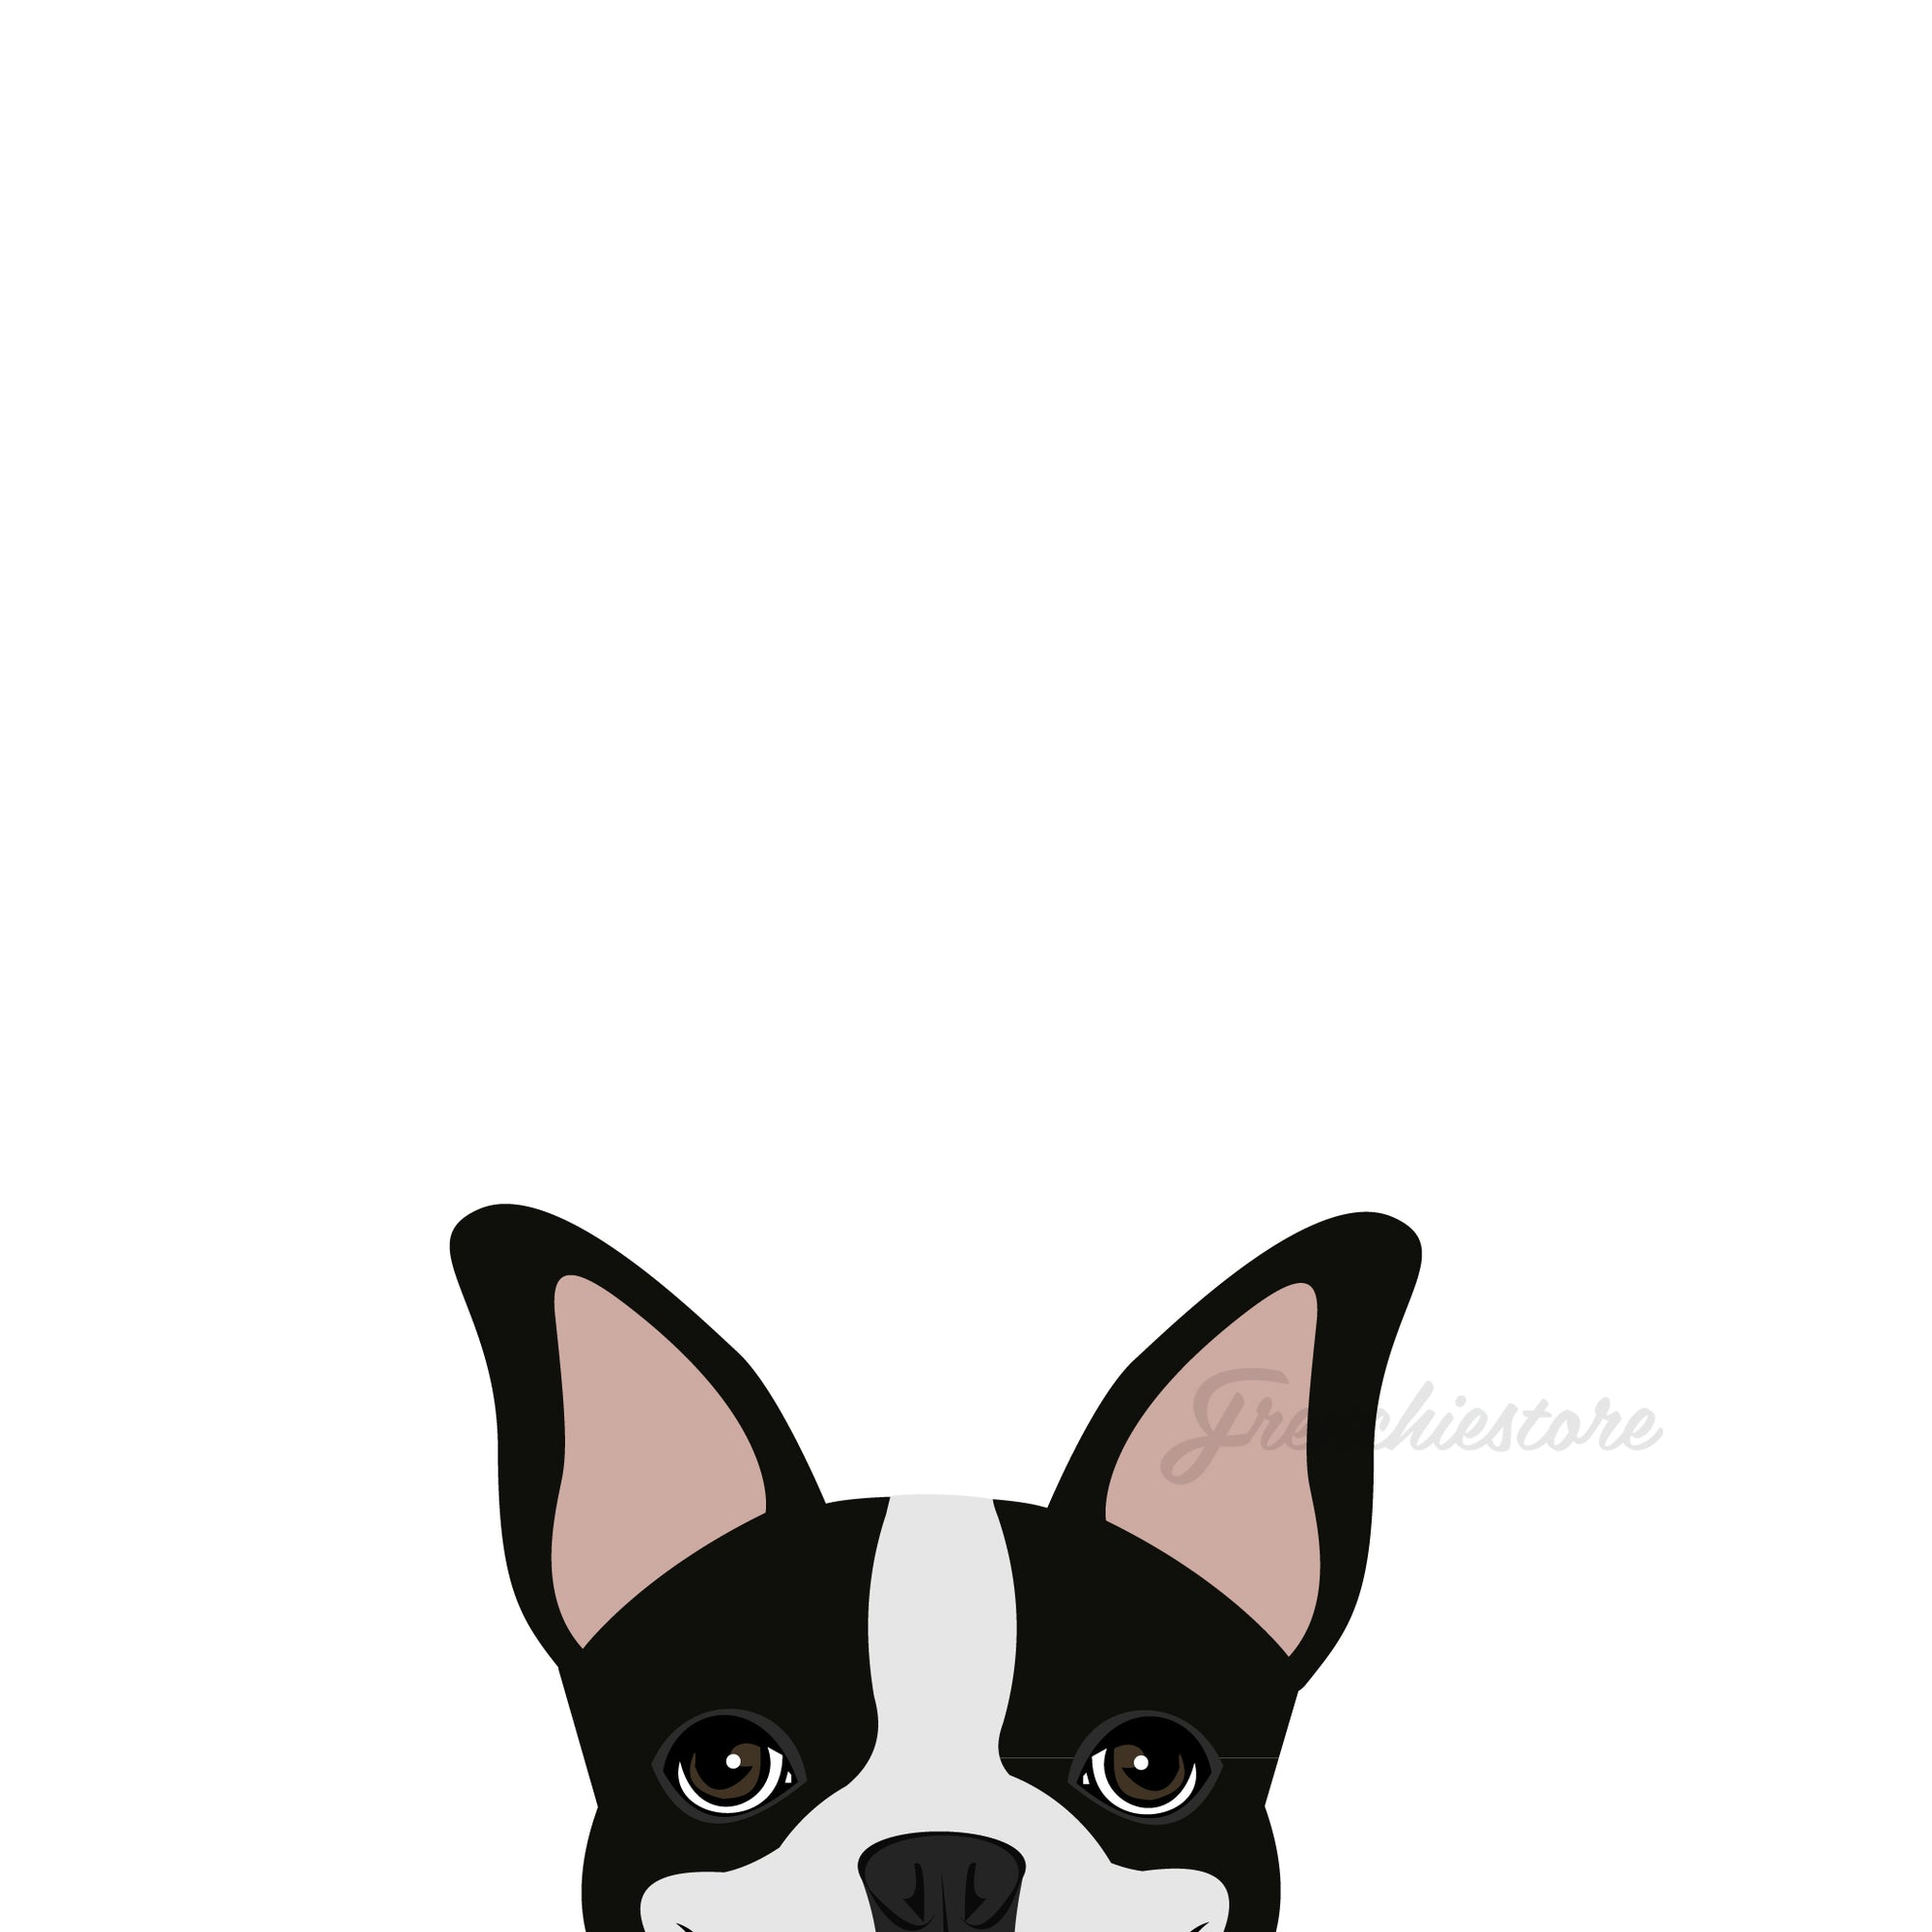 Boston Terrier Dog Sticker | Frenchiestore |  Black Pied Boston Terrier Car Decal, Frenchie Dog, French Bulldog pet products